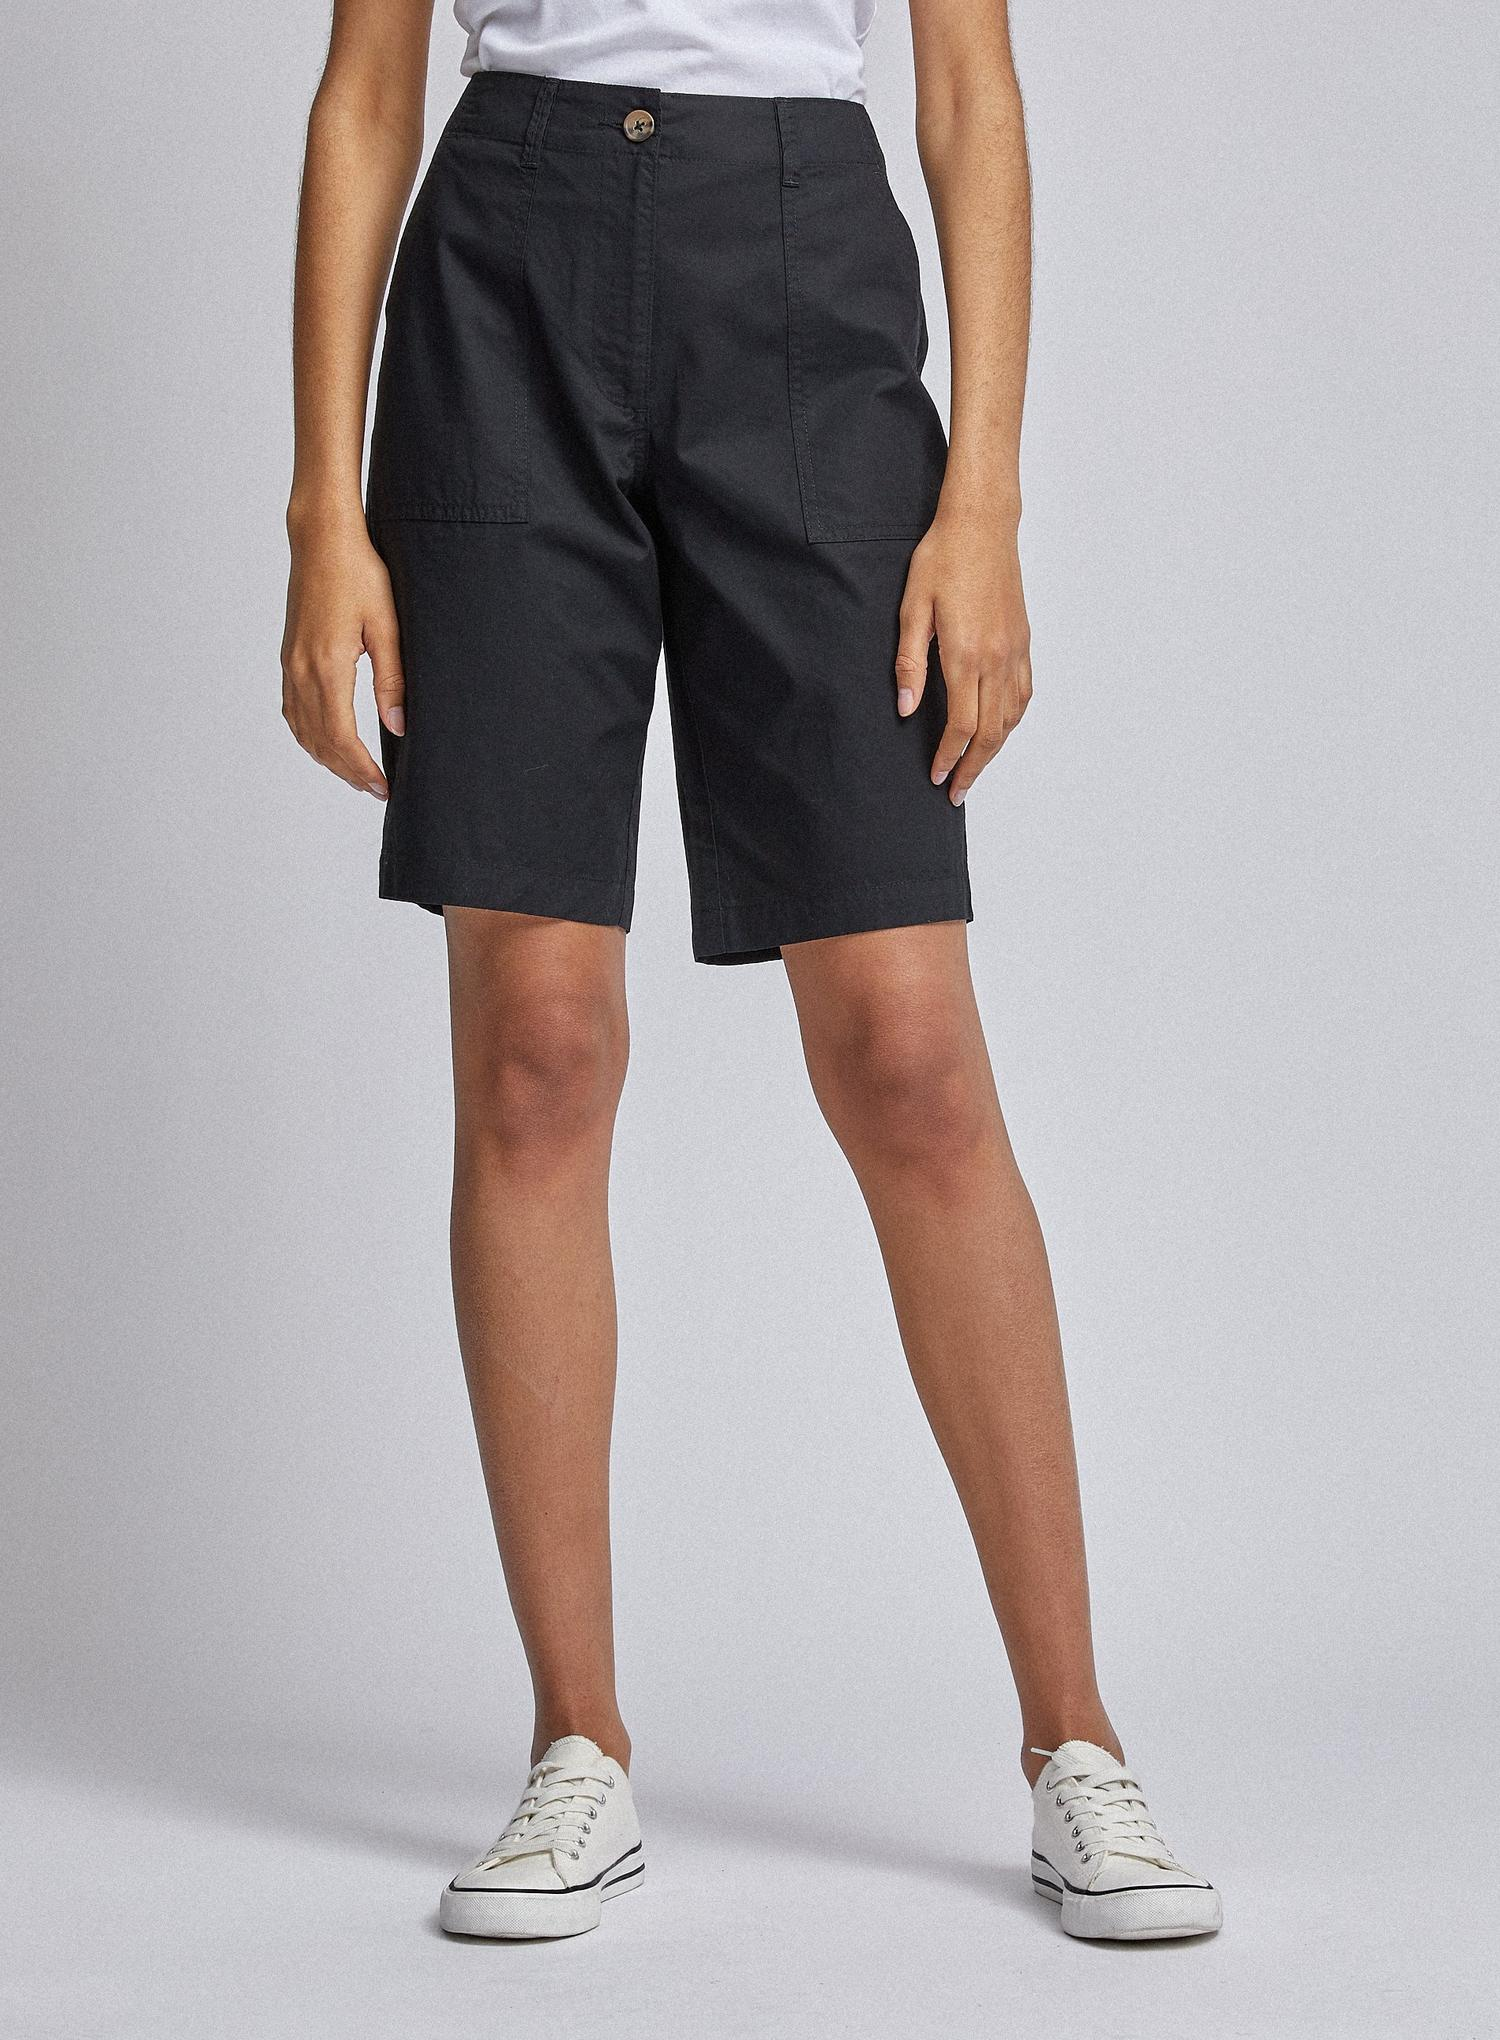 105 Black Poplin Knee Shorts image number 4